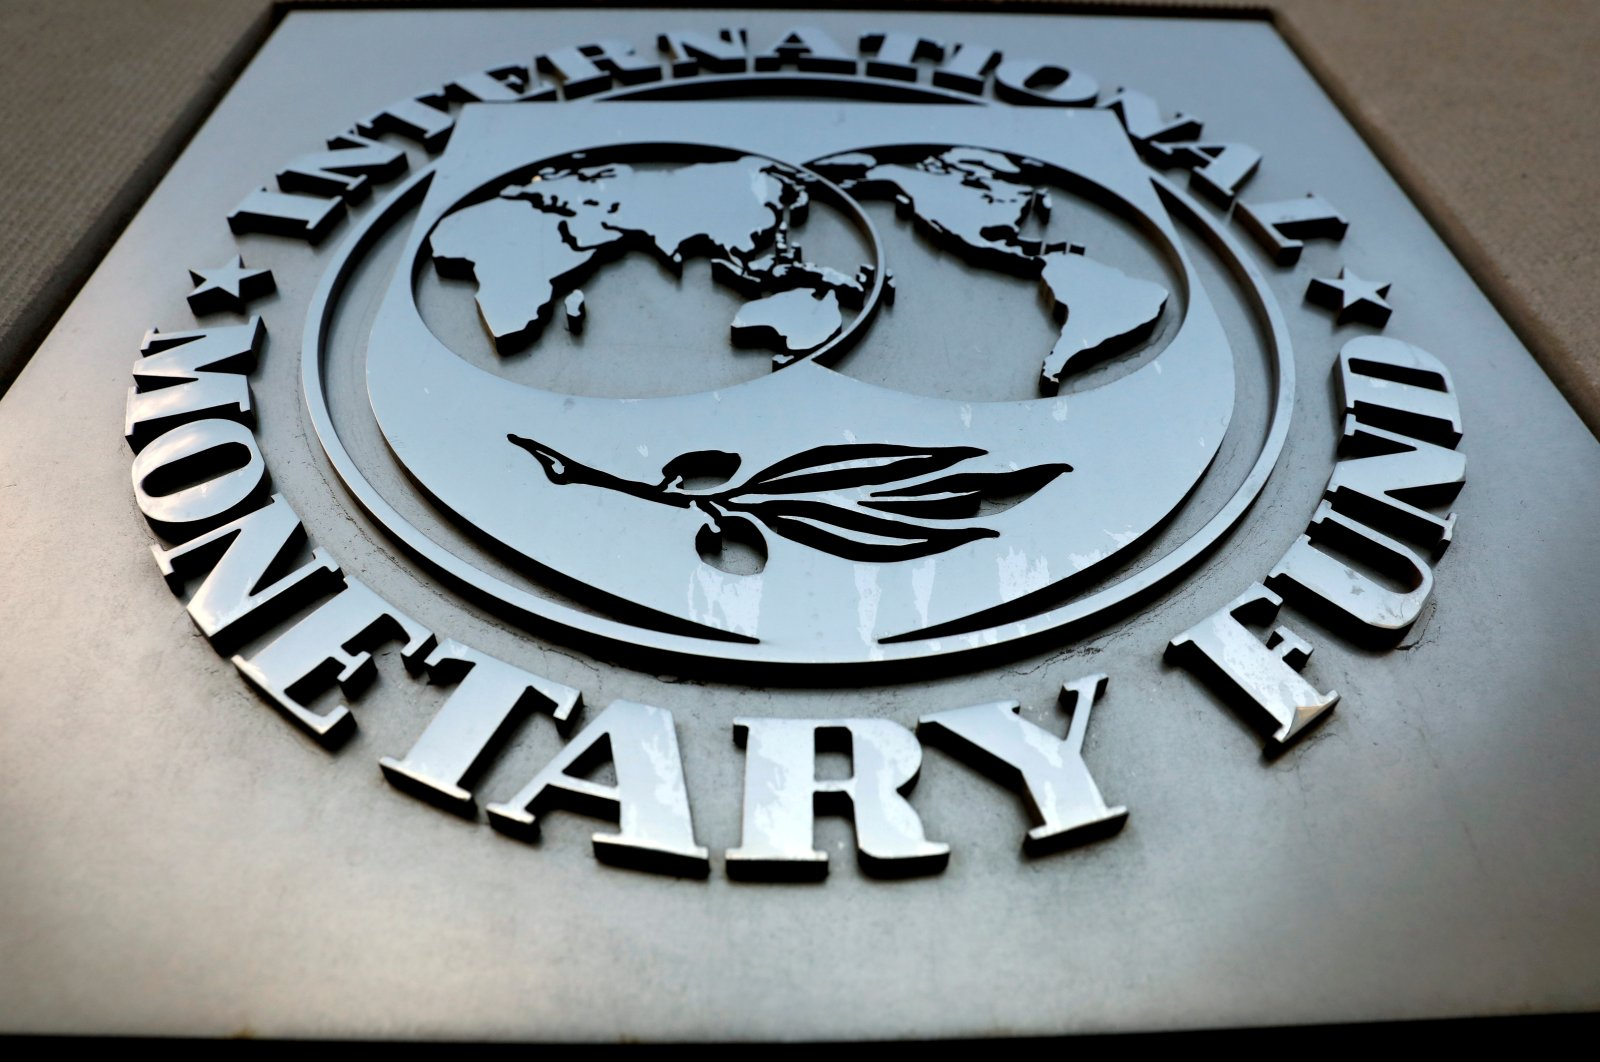 The International Monetary Fund (IMF) logo is seen outside the headquarters building in Washington, U.S., Sept. 4, 2018. (Reuters File Photo)